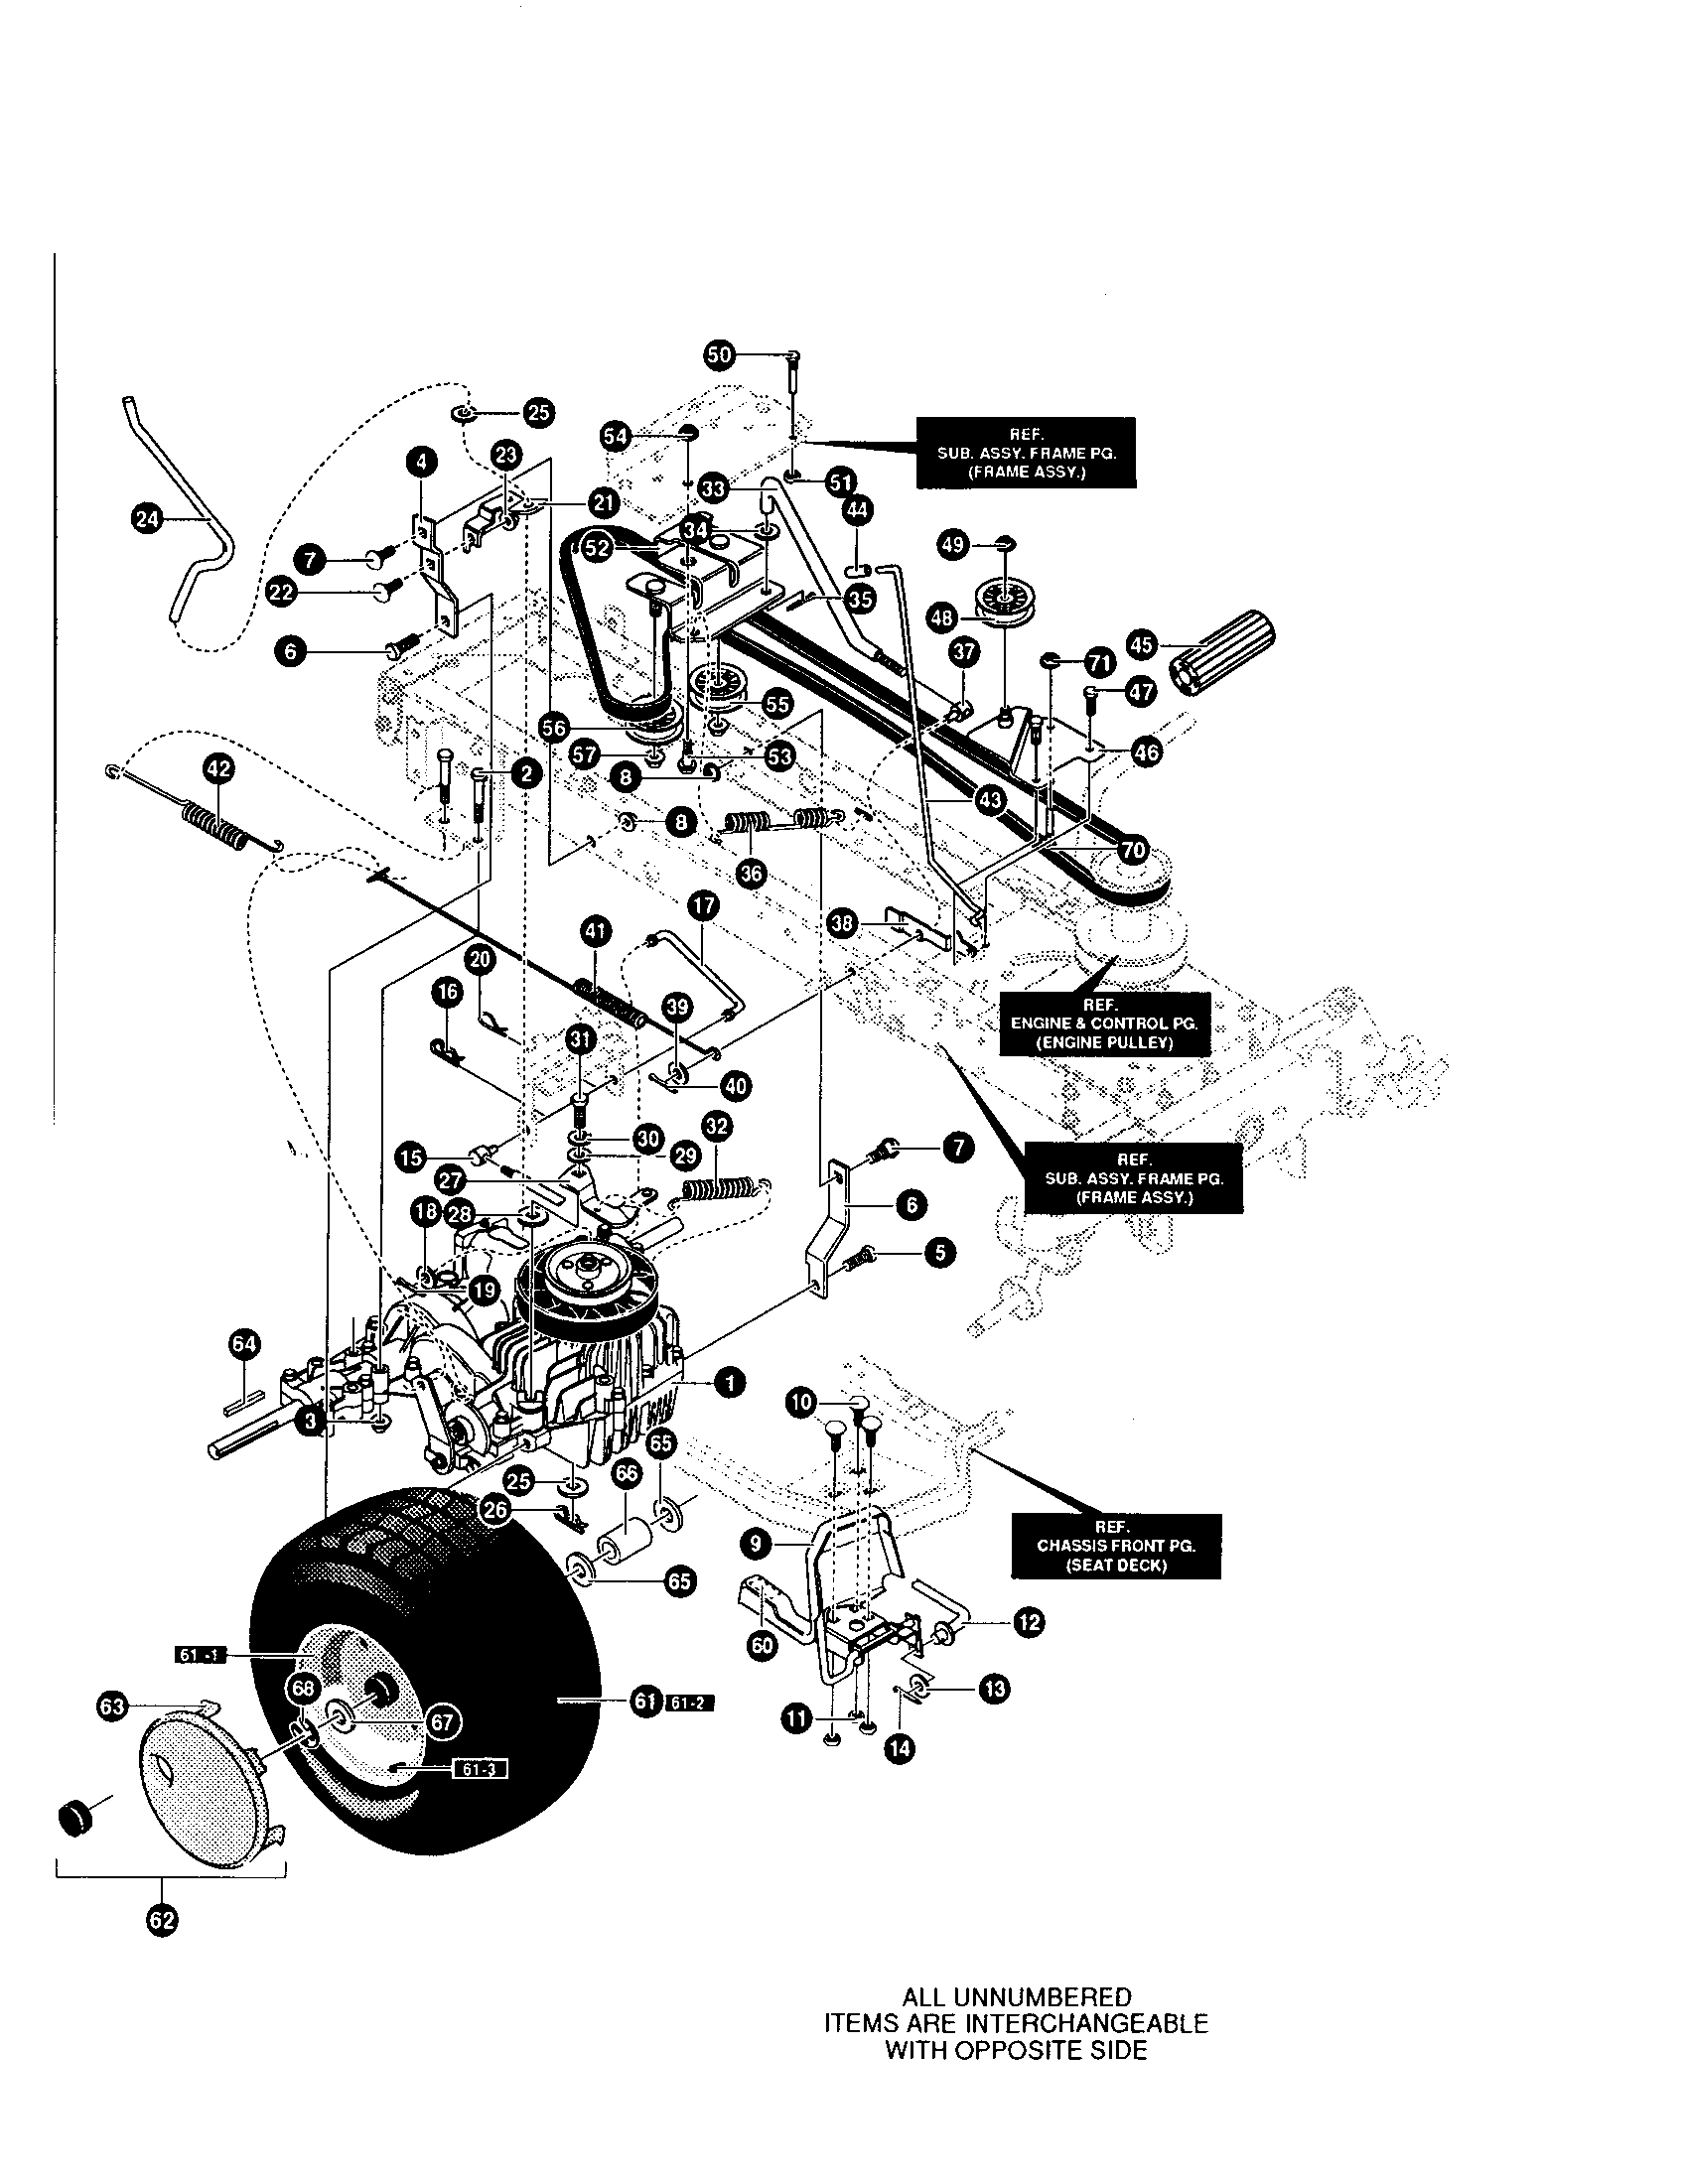 ranch king lawn mower parts ranch king mower parts diagrams